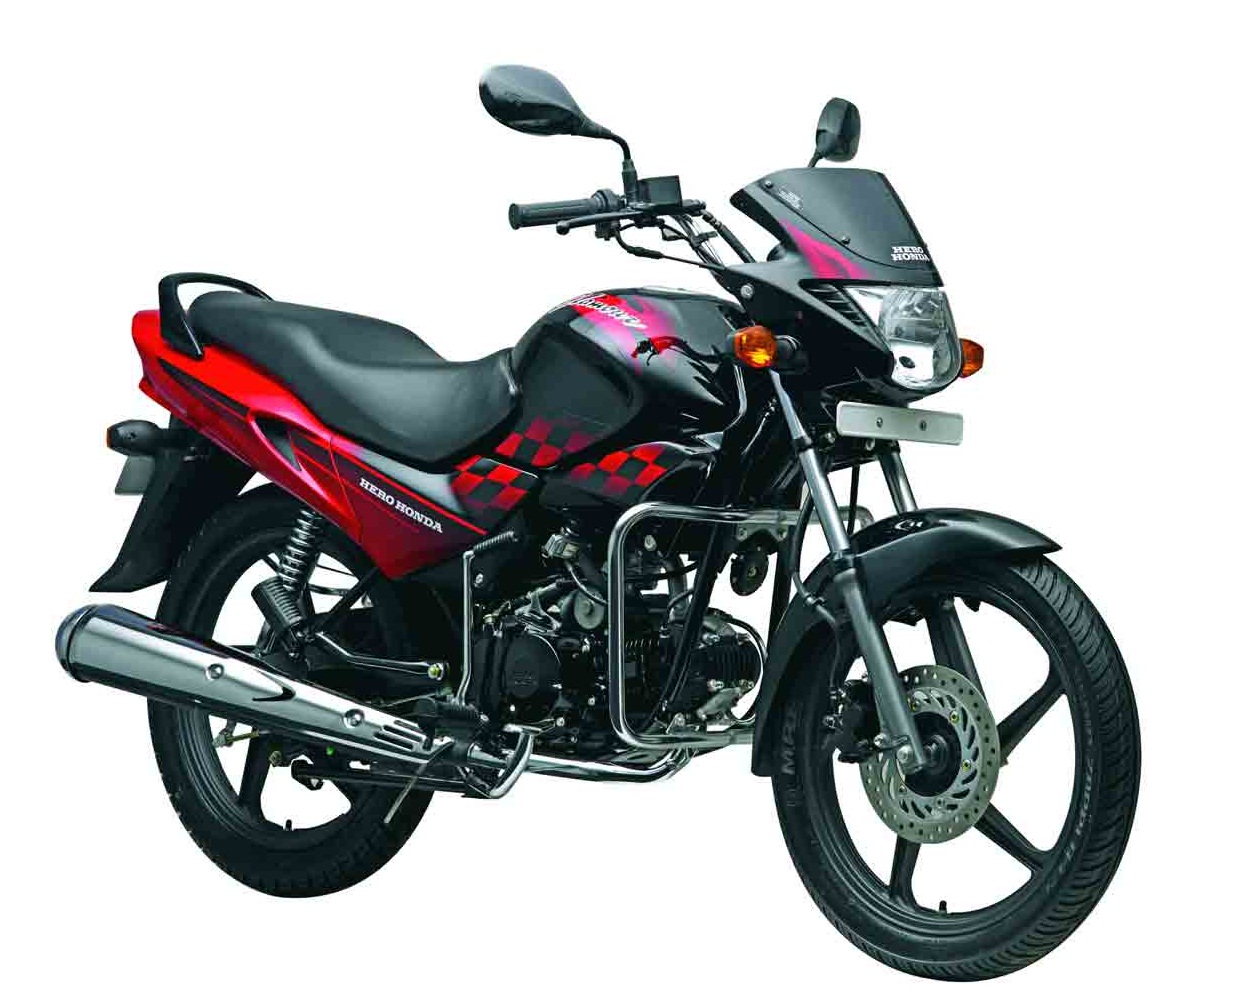 Hero Honda Glamour Reviews Price Specifications Mileage